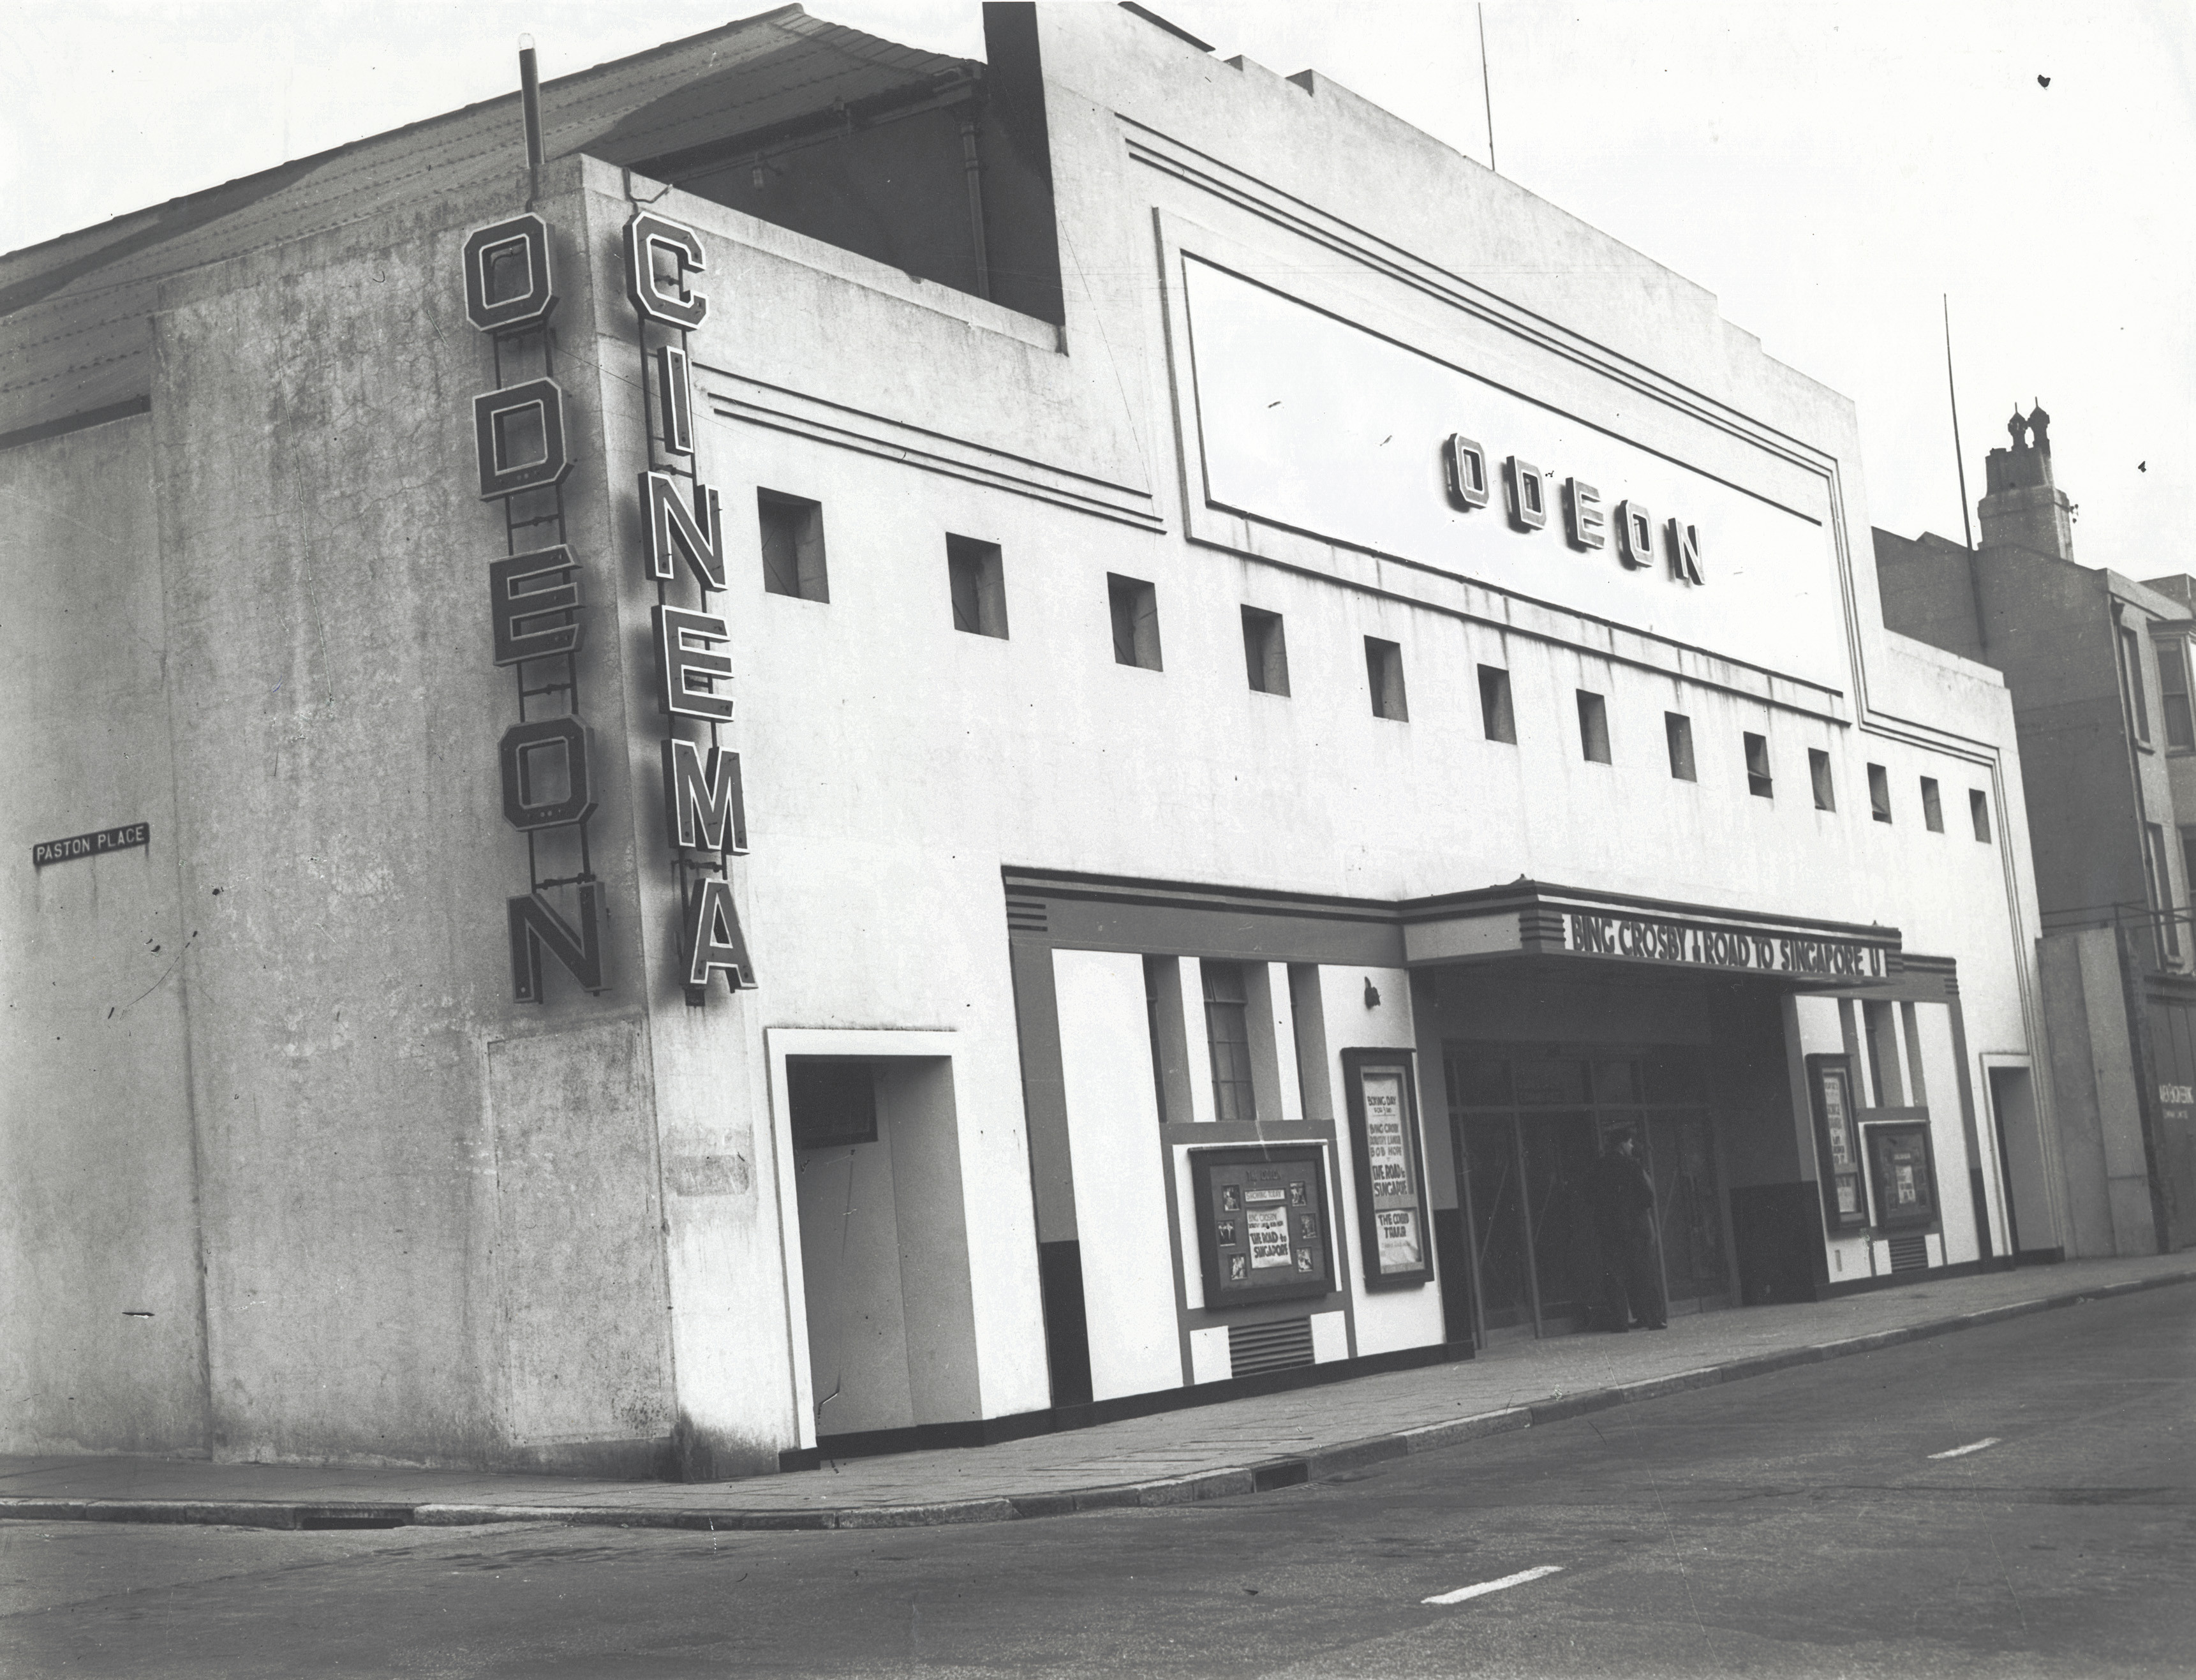 Odeon Cinema, 1950s